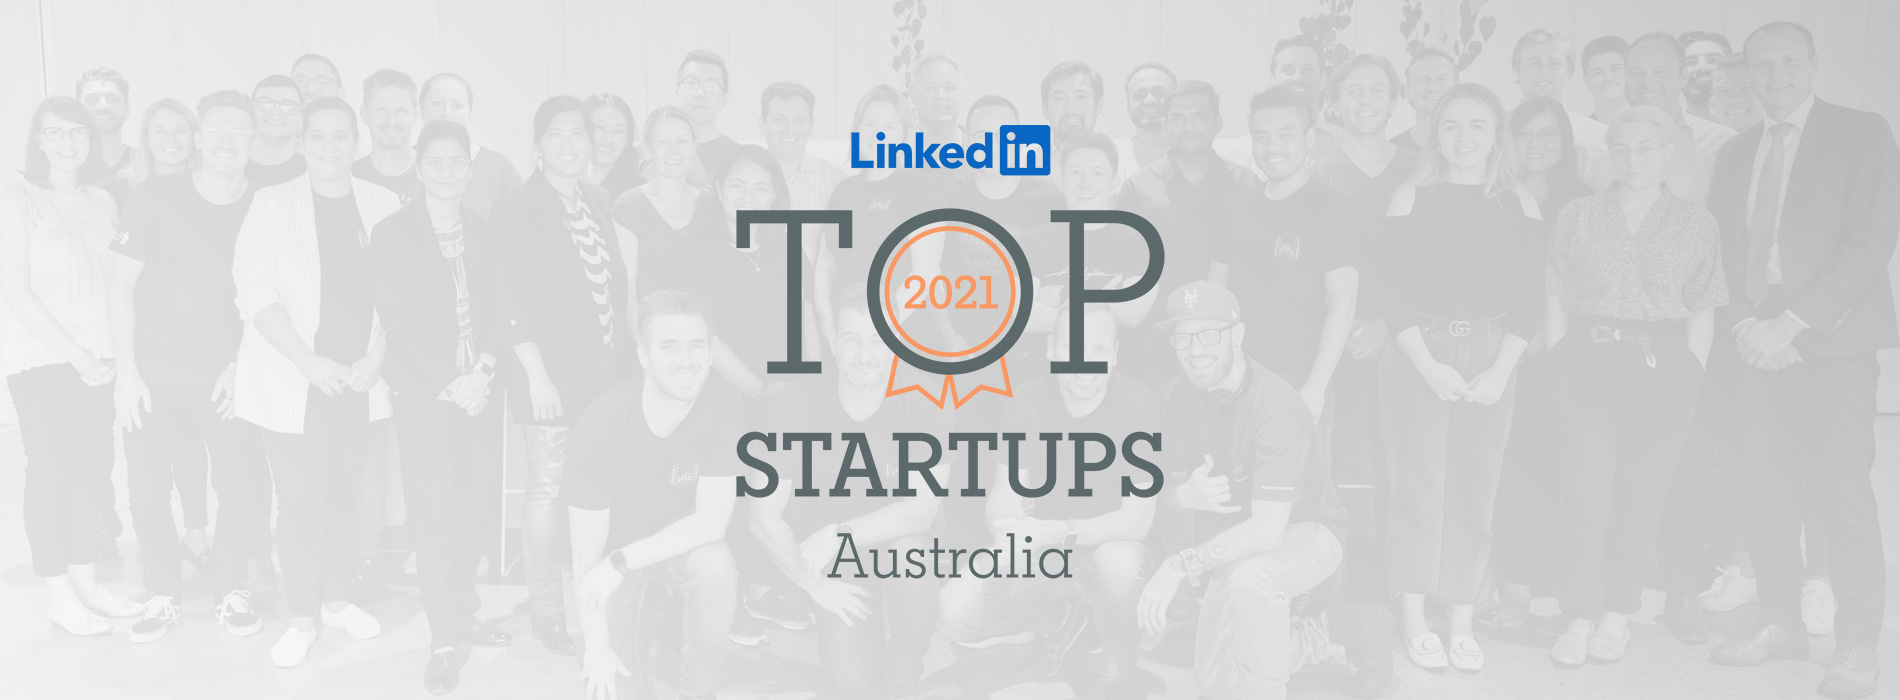 Willow recognised as one of Linkedin's top startups